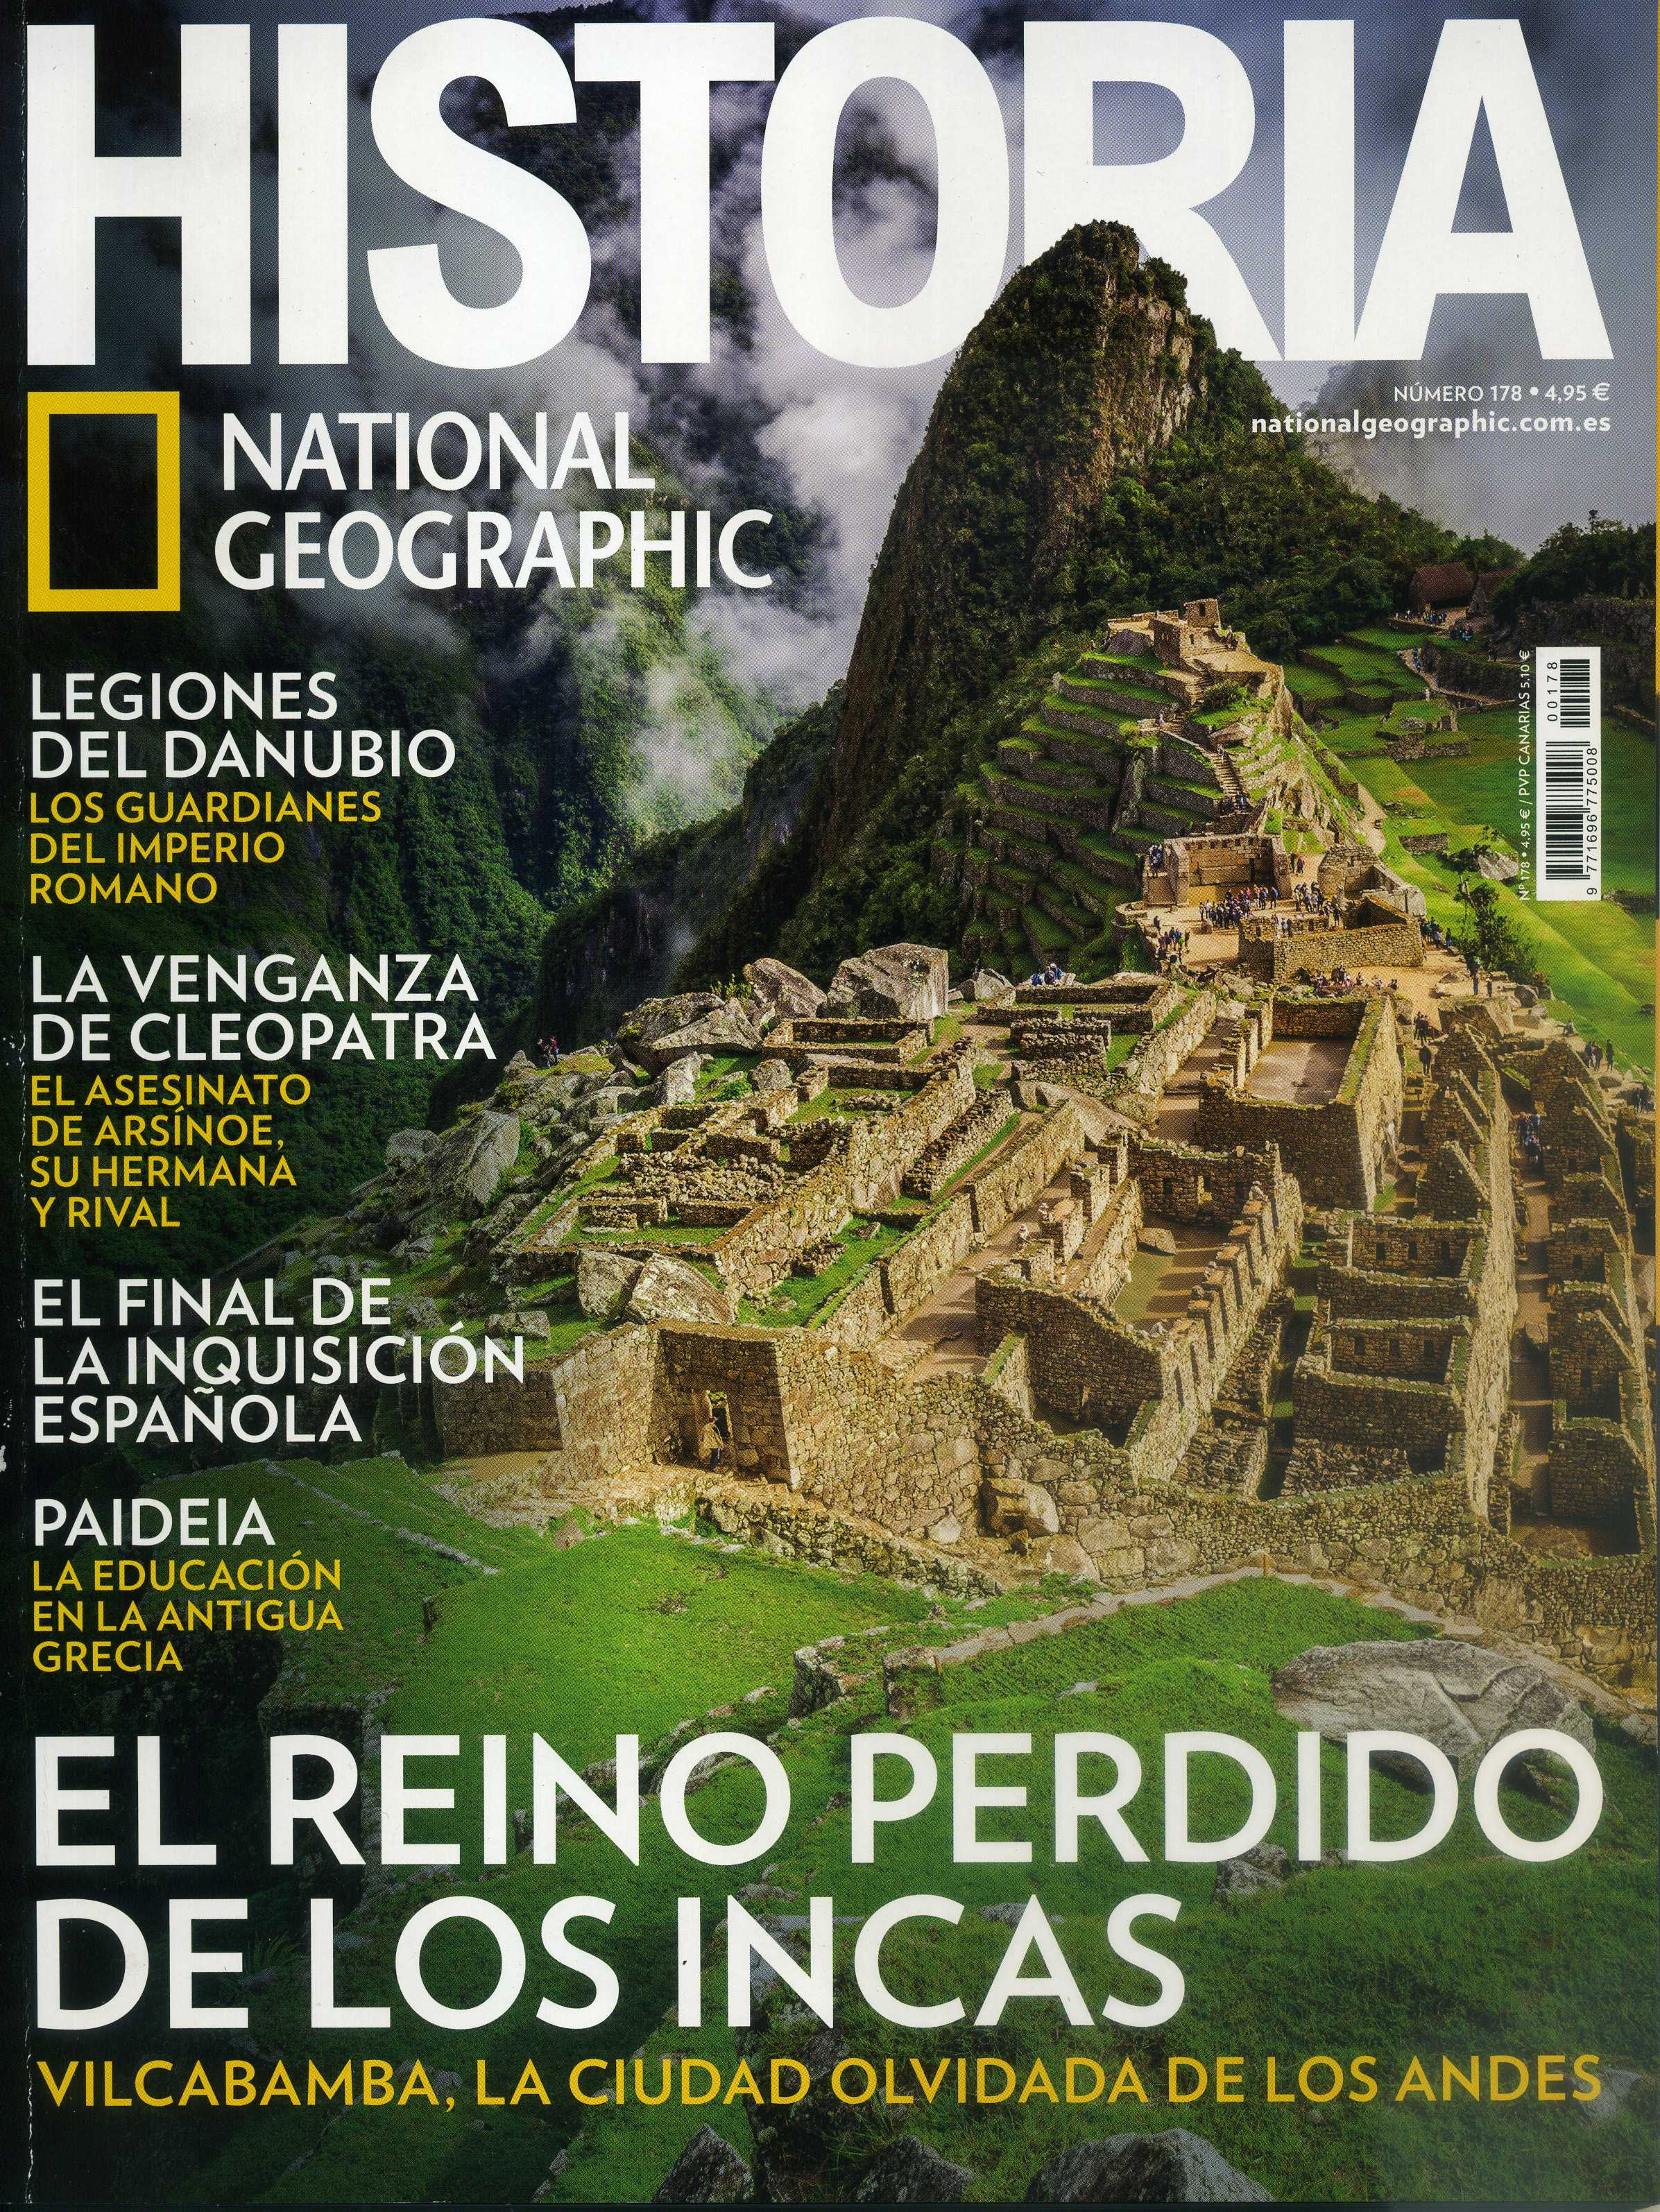 HISTORIA National Geographic. No. 178